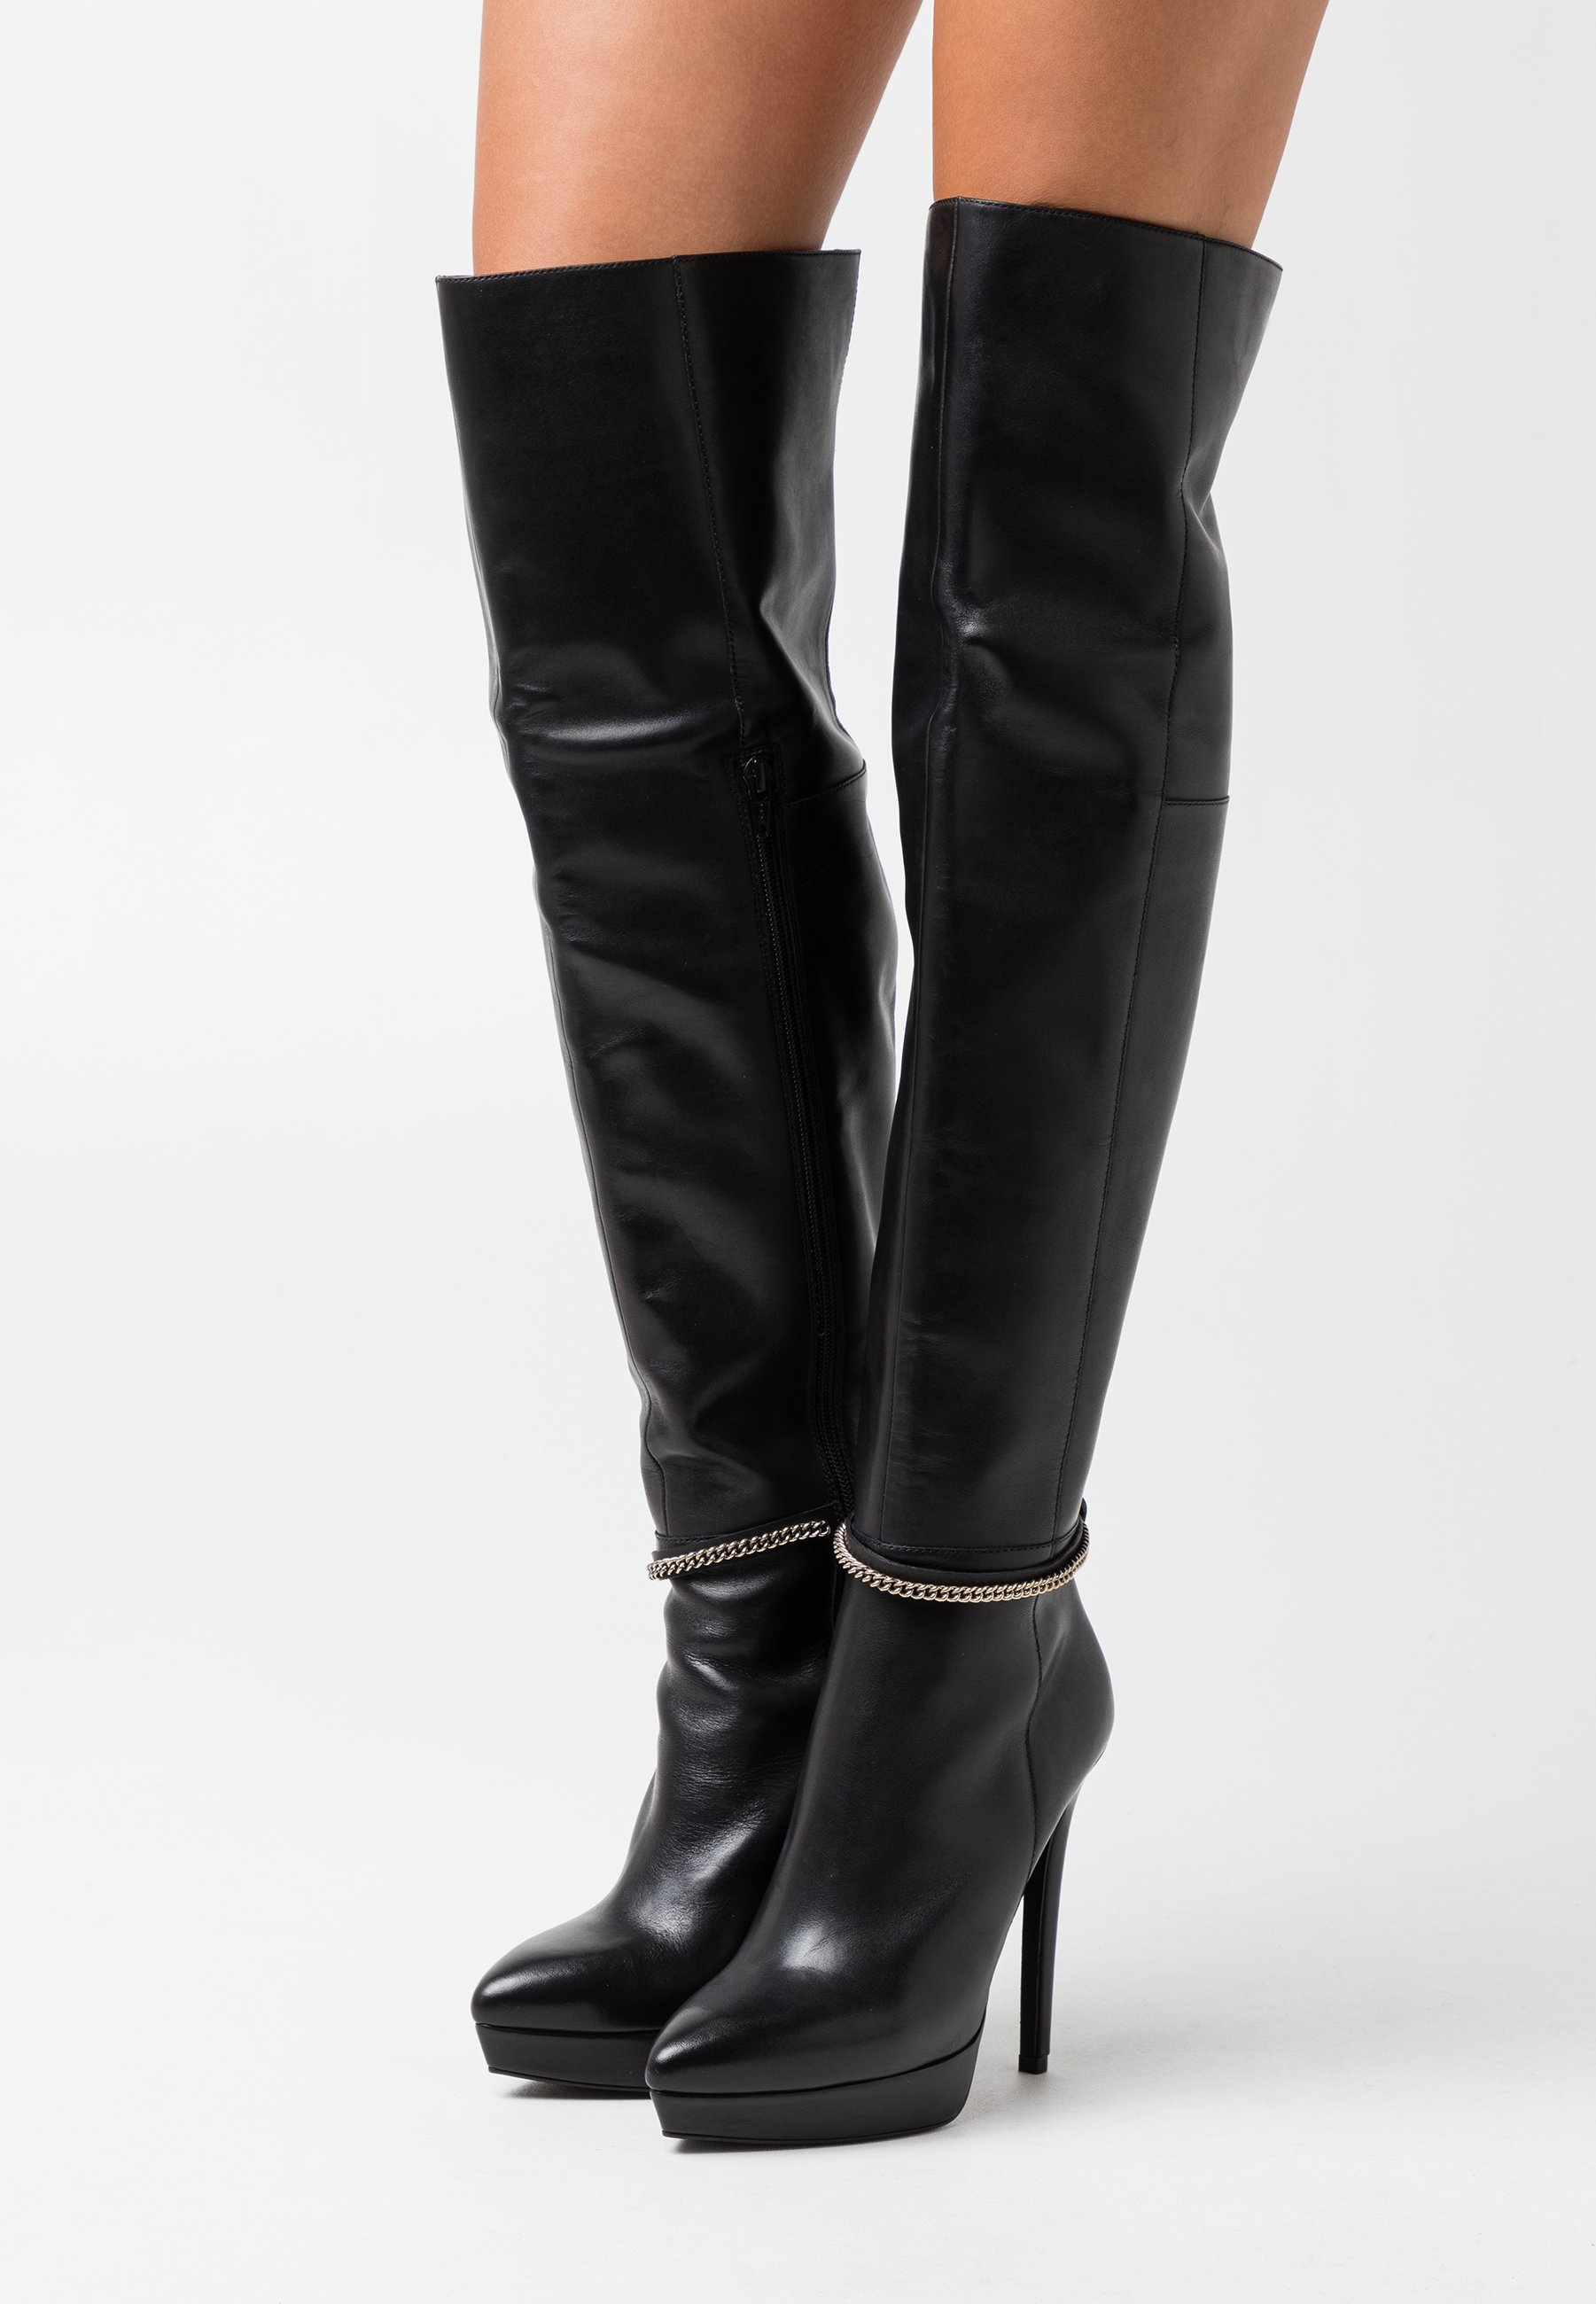 Women LEATHER - High heeled boots - black